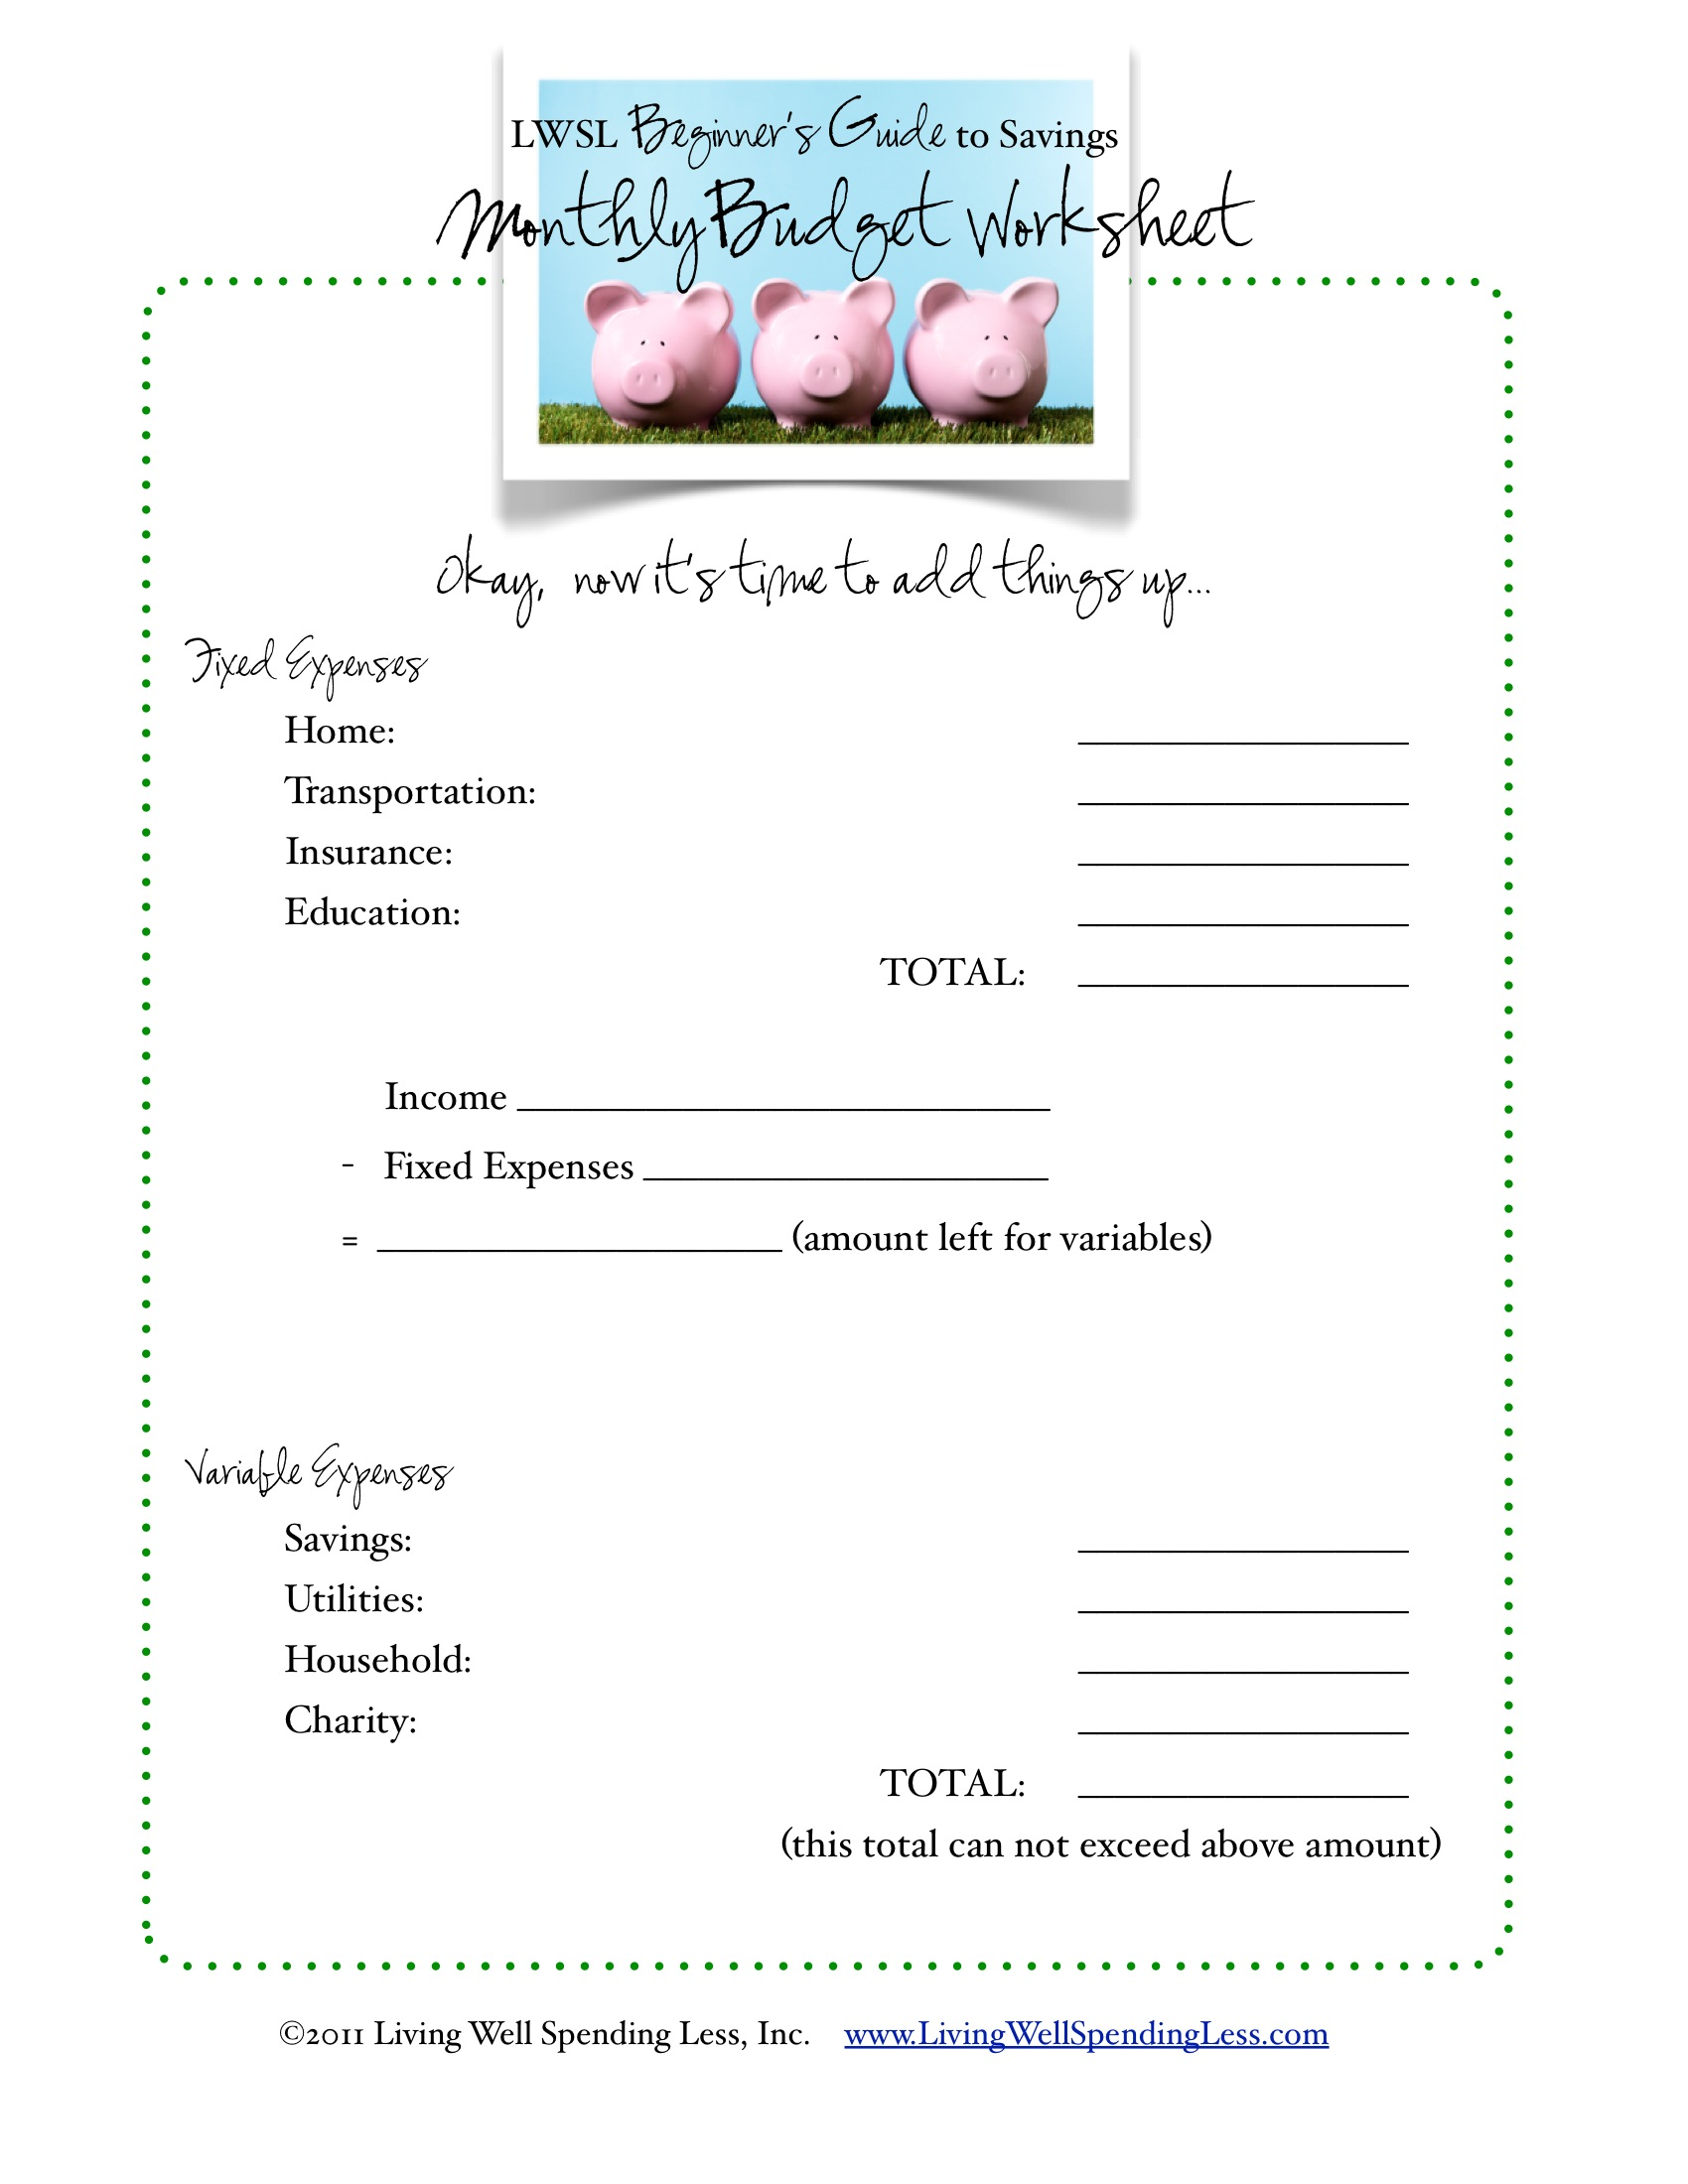 Worksheets Starting A Budget Worksheet starting a budget worksheet abitlikethis on matter of low income template downloads